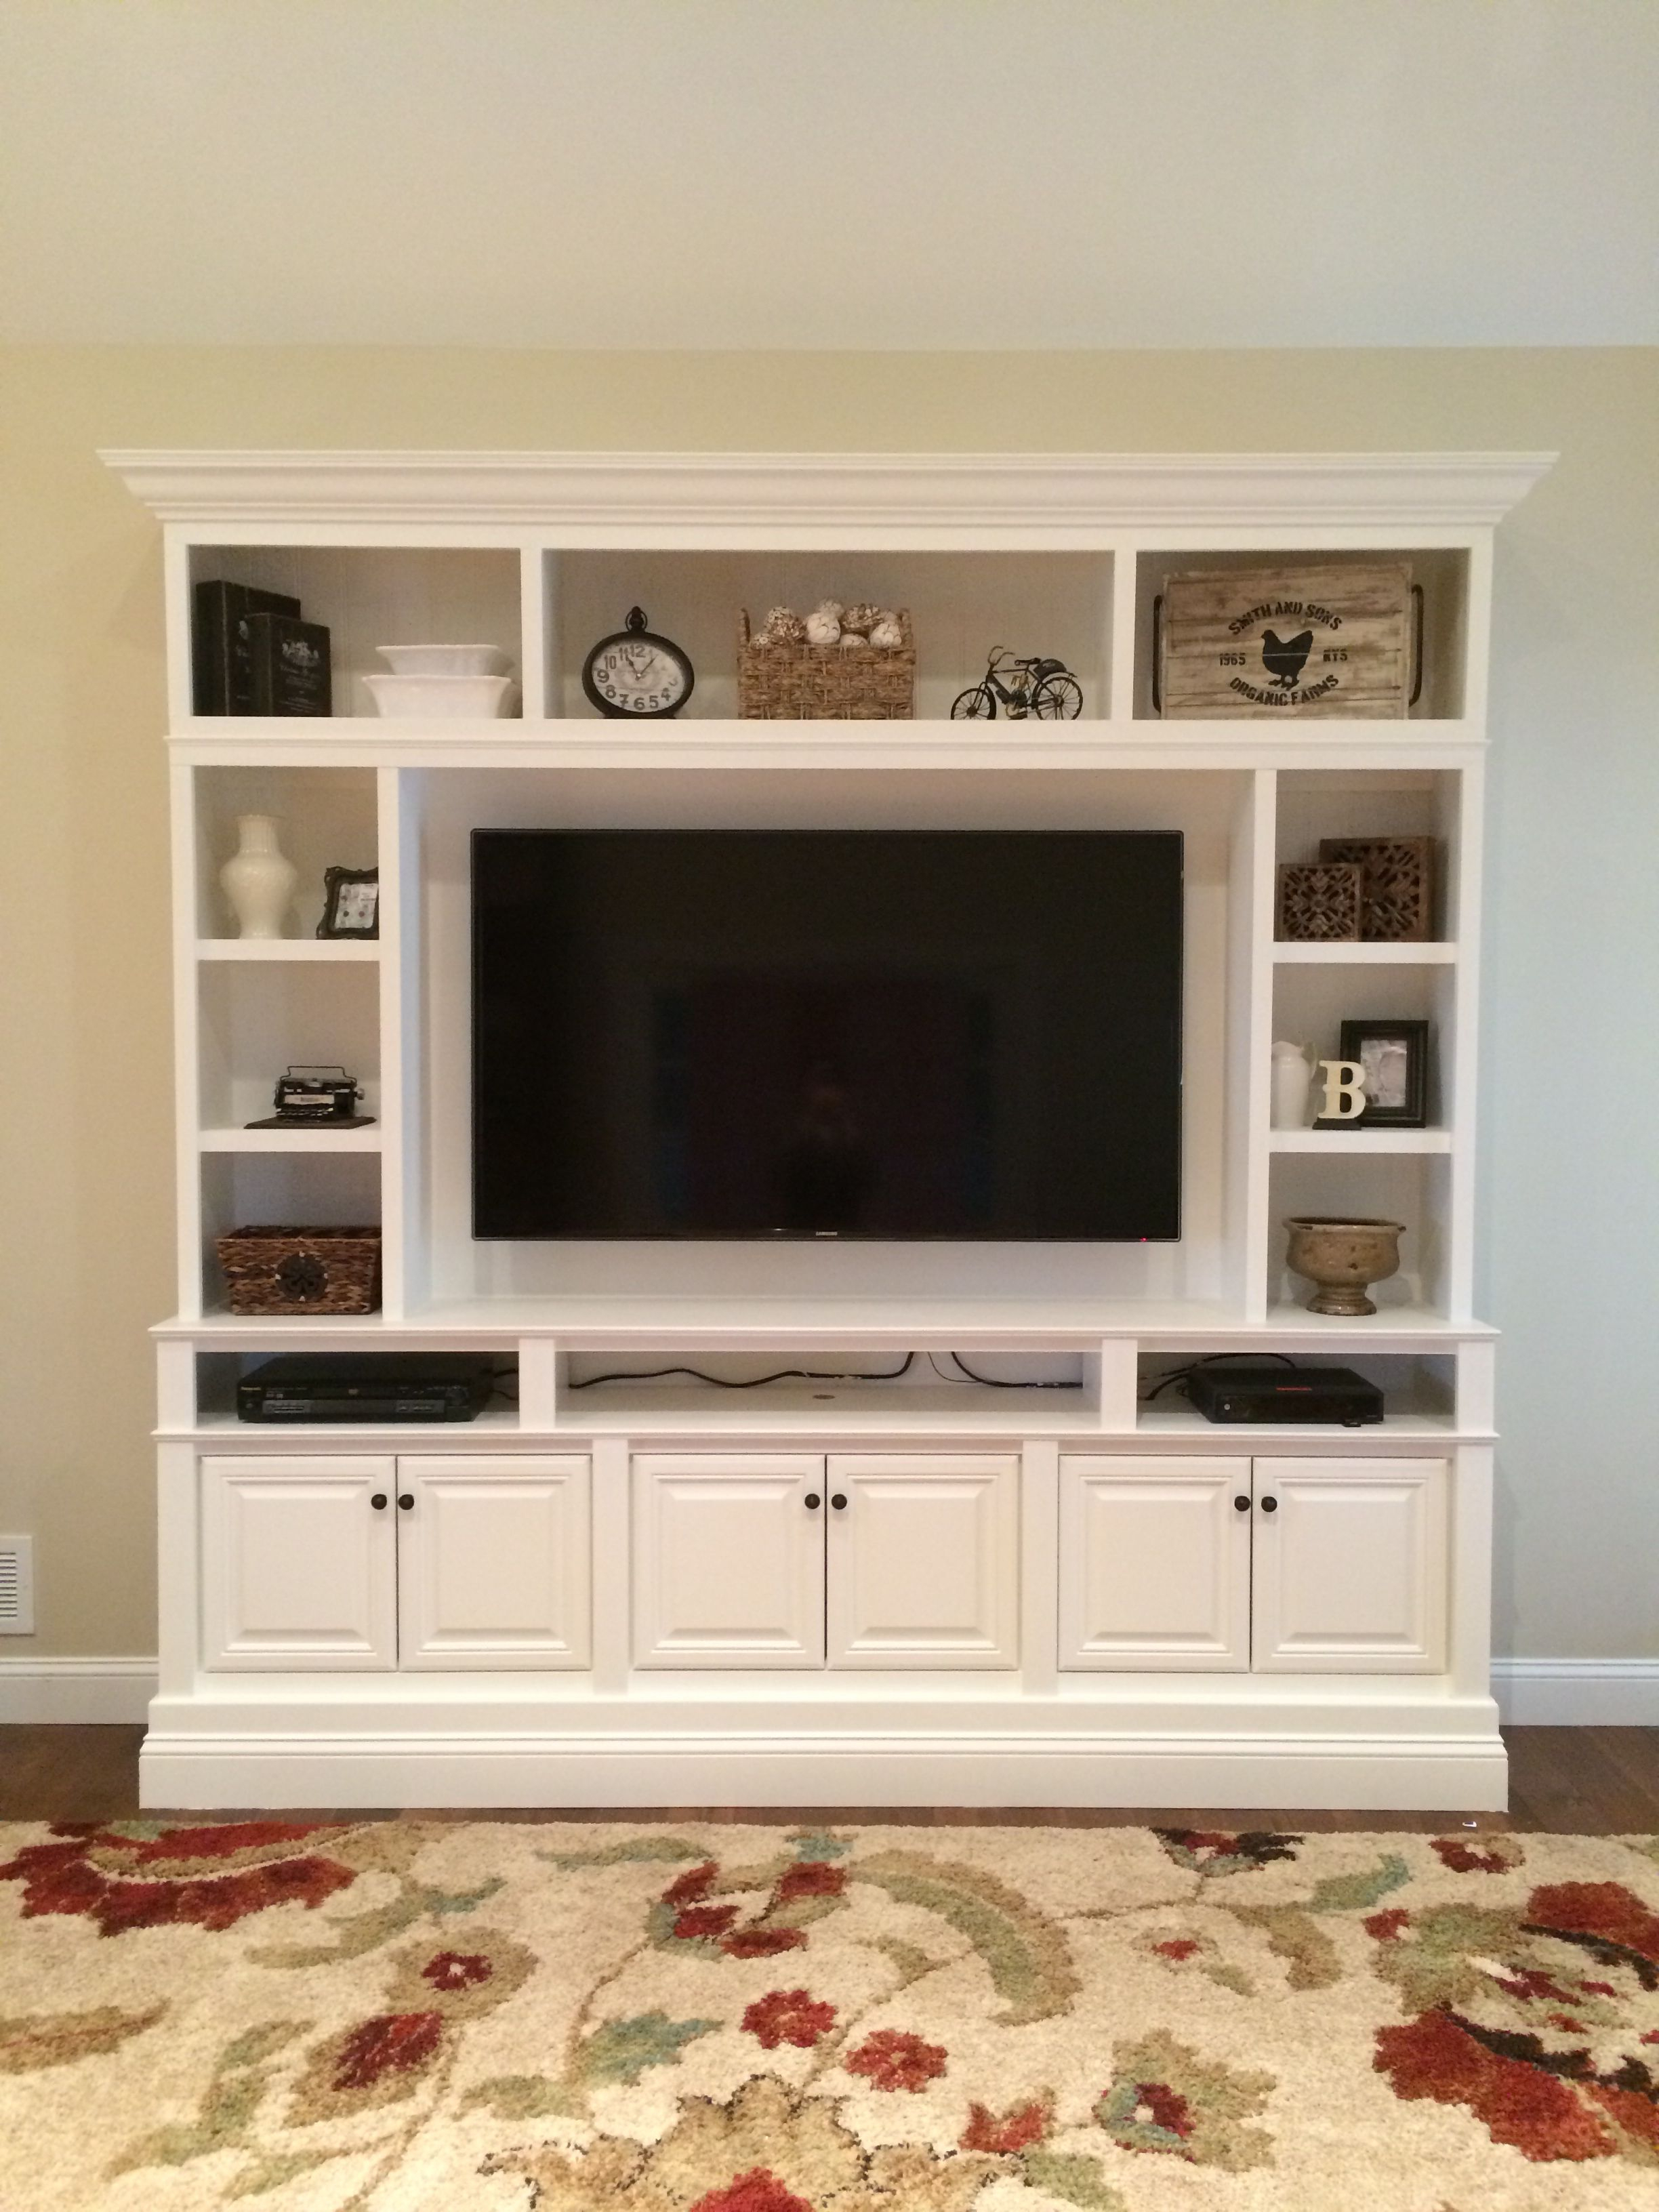 17 Diy Entertainment Center Ideas And Designs For Your New Home with Murphy 72 Inch Tv Stands (Image 1 of 30)